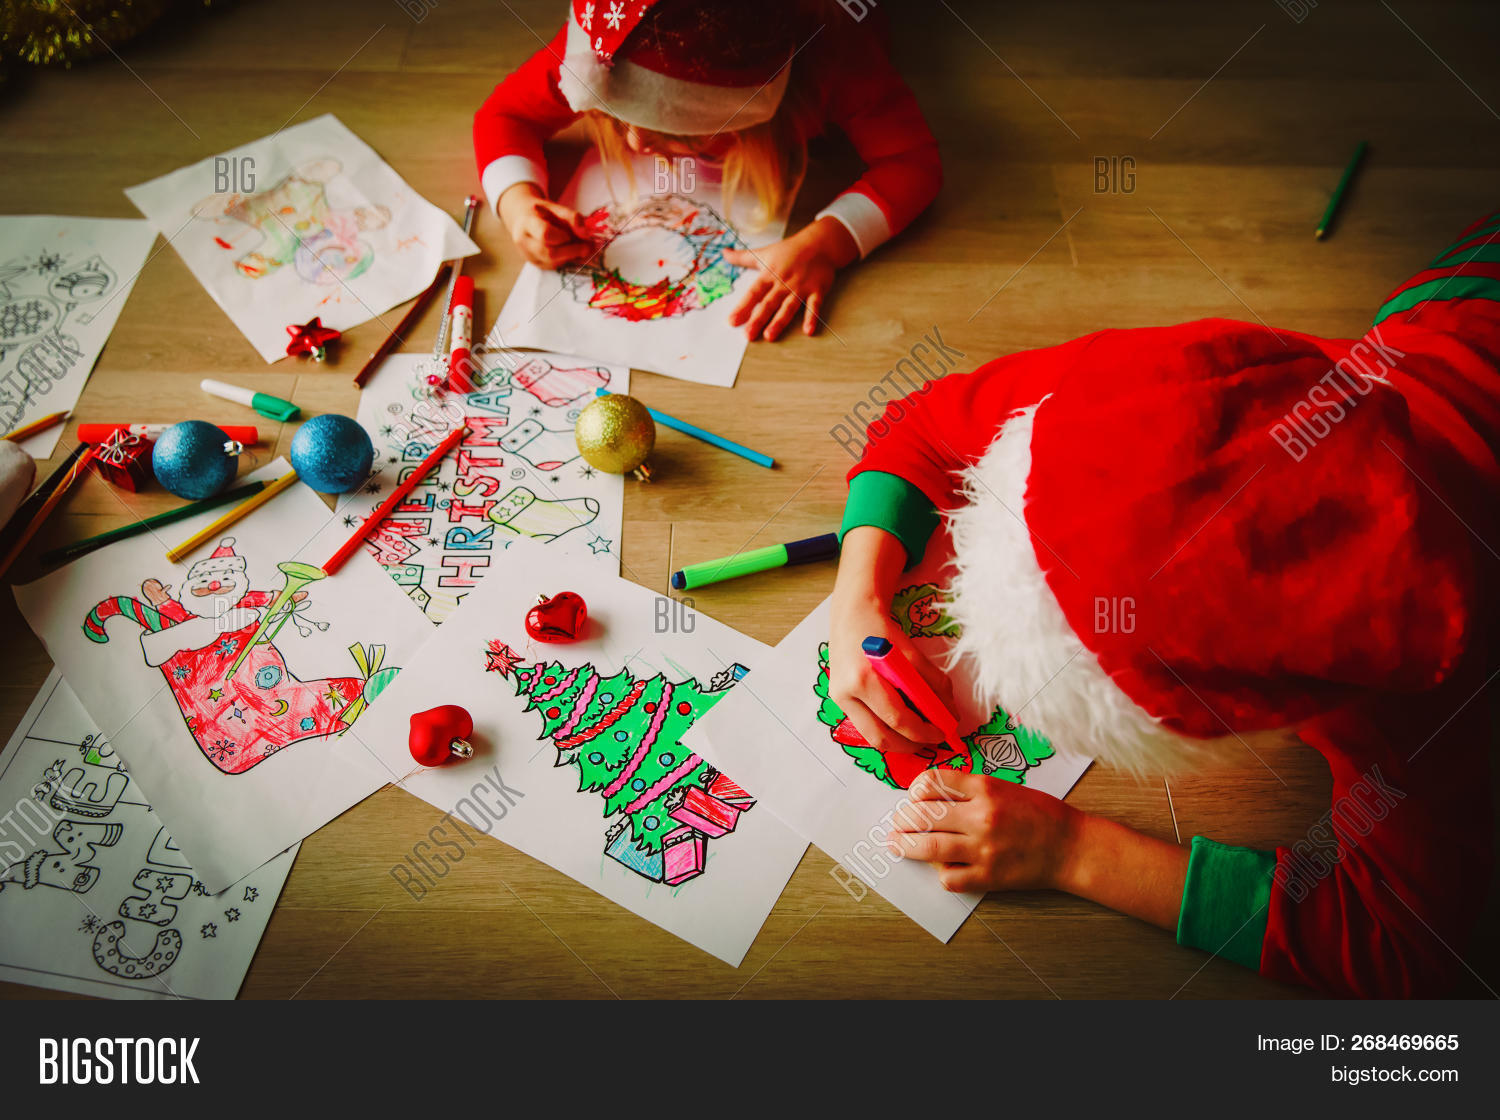 Christmas Ideas For Kids Drawing.Kids Making Christmas Image Photo Free Trial Bigstock